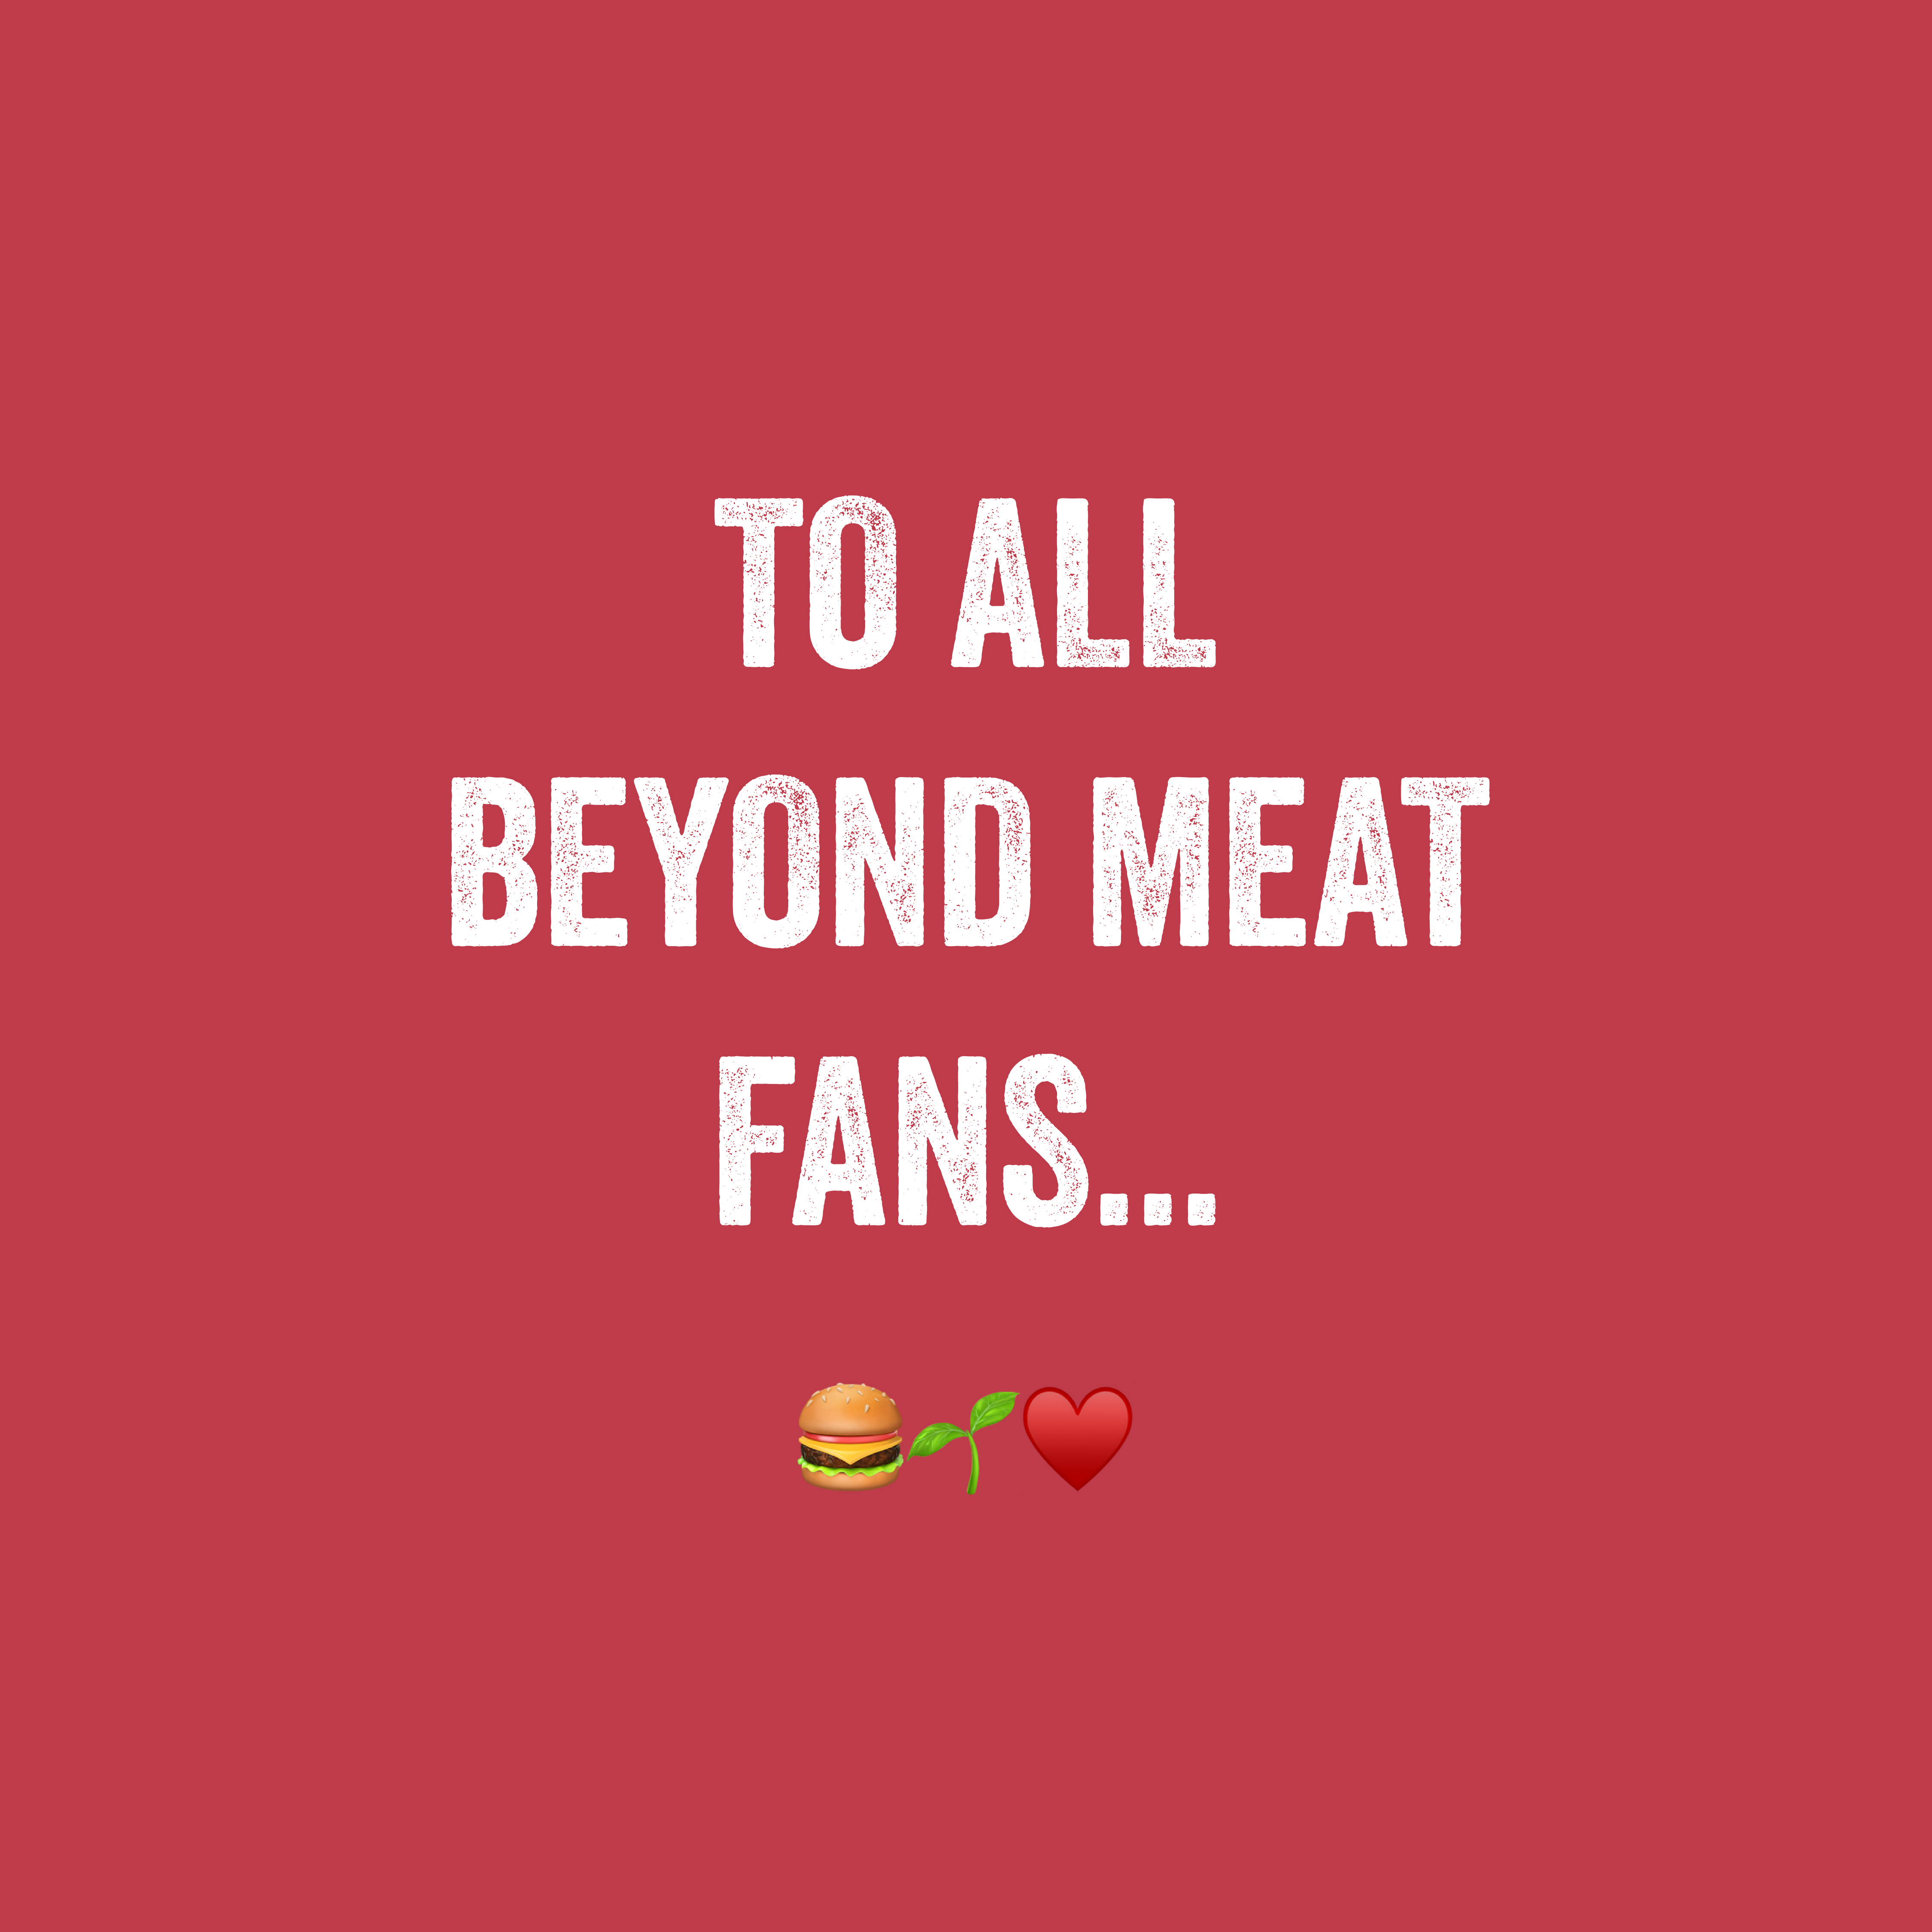 Beyond Meat Triples Production Footprint - Beyond Meat - The